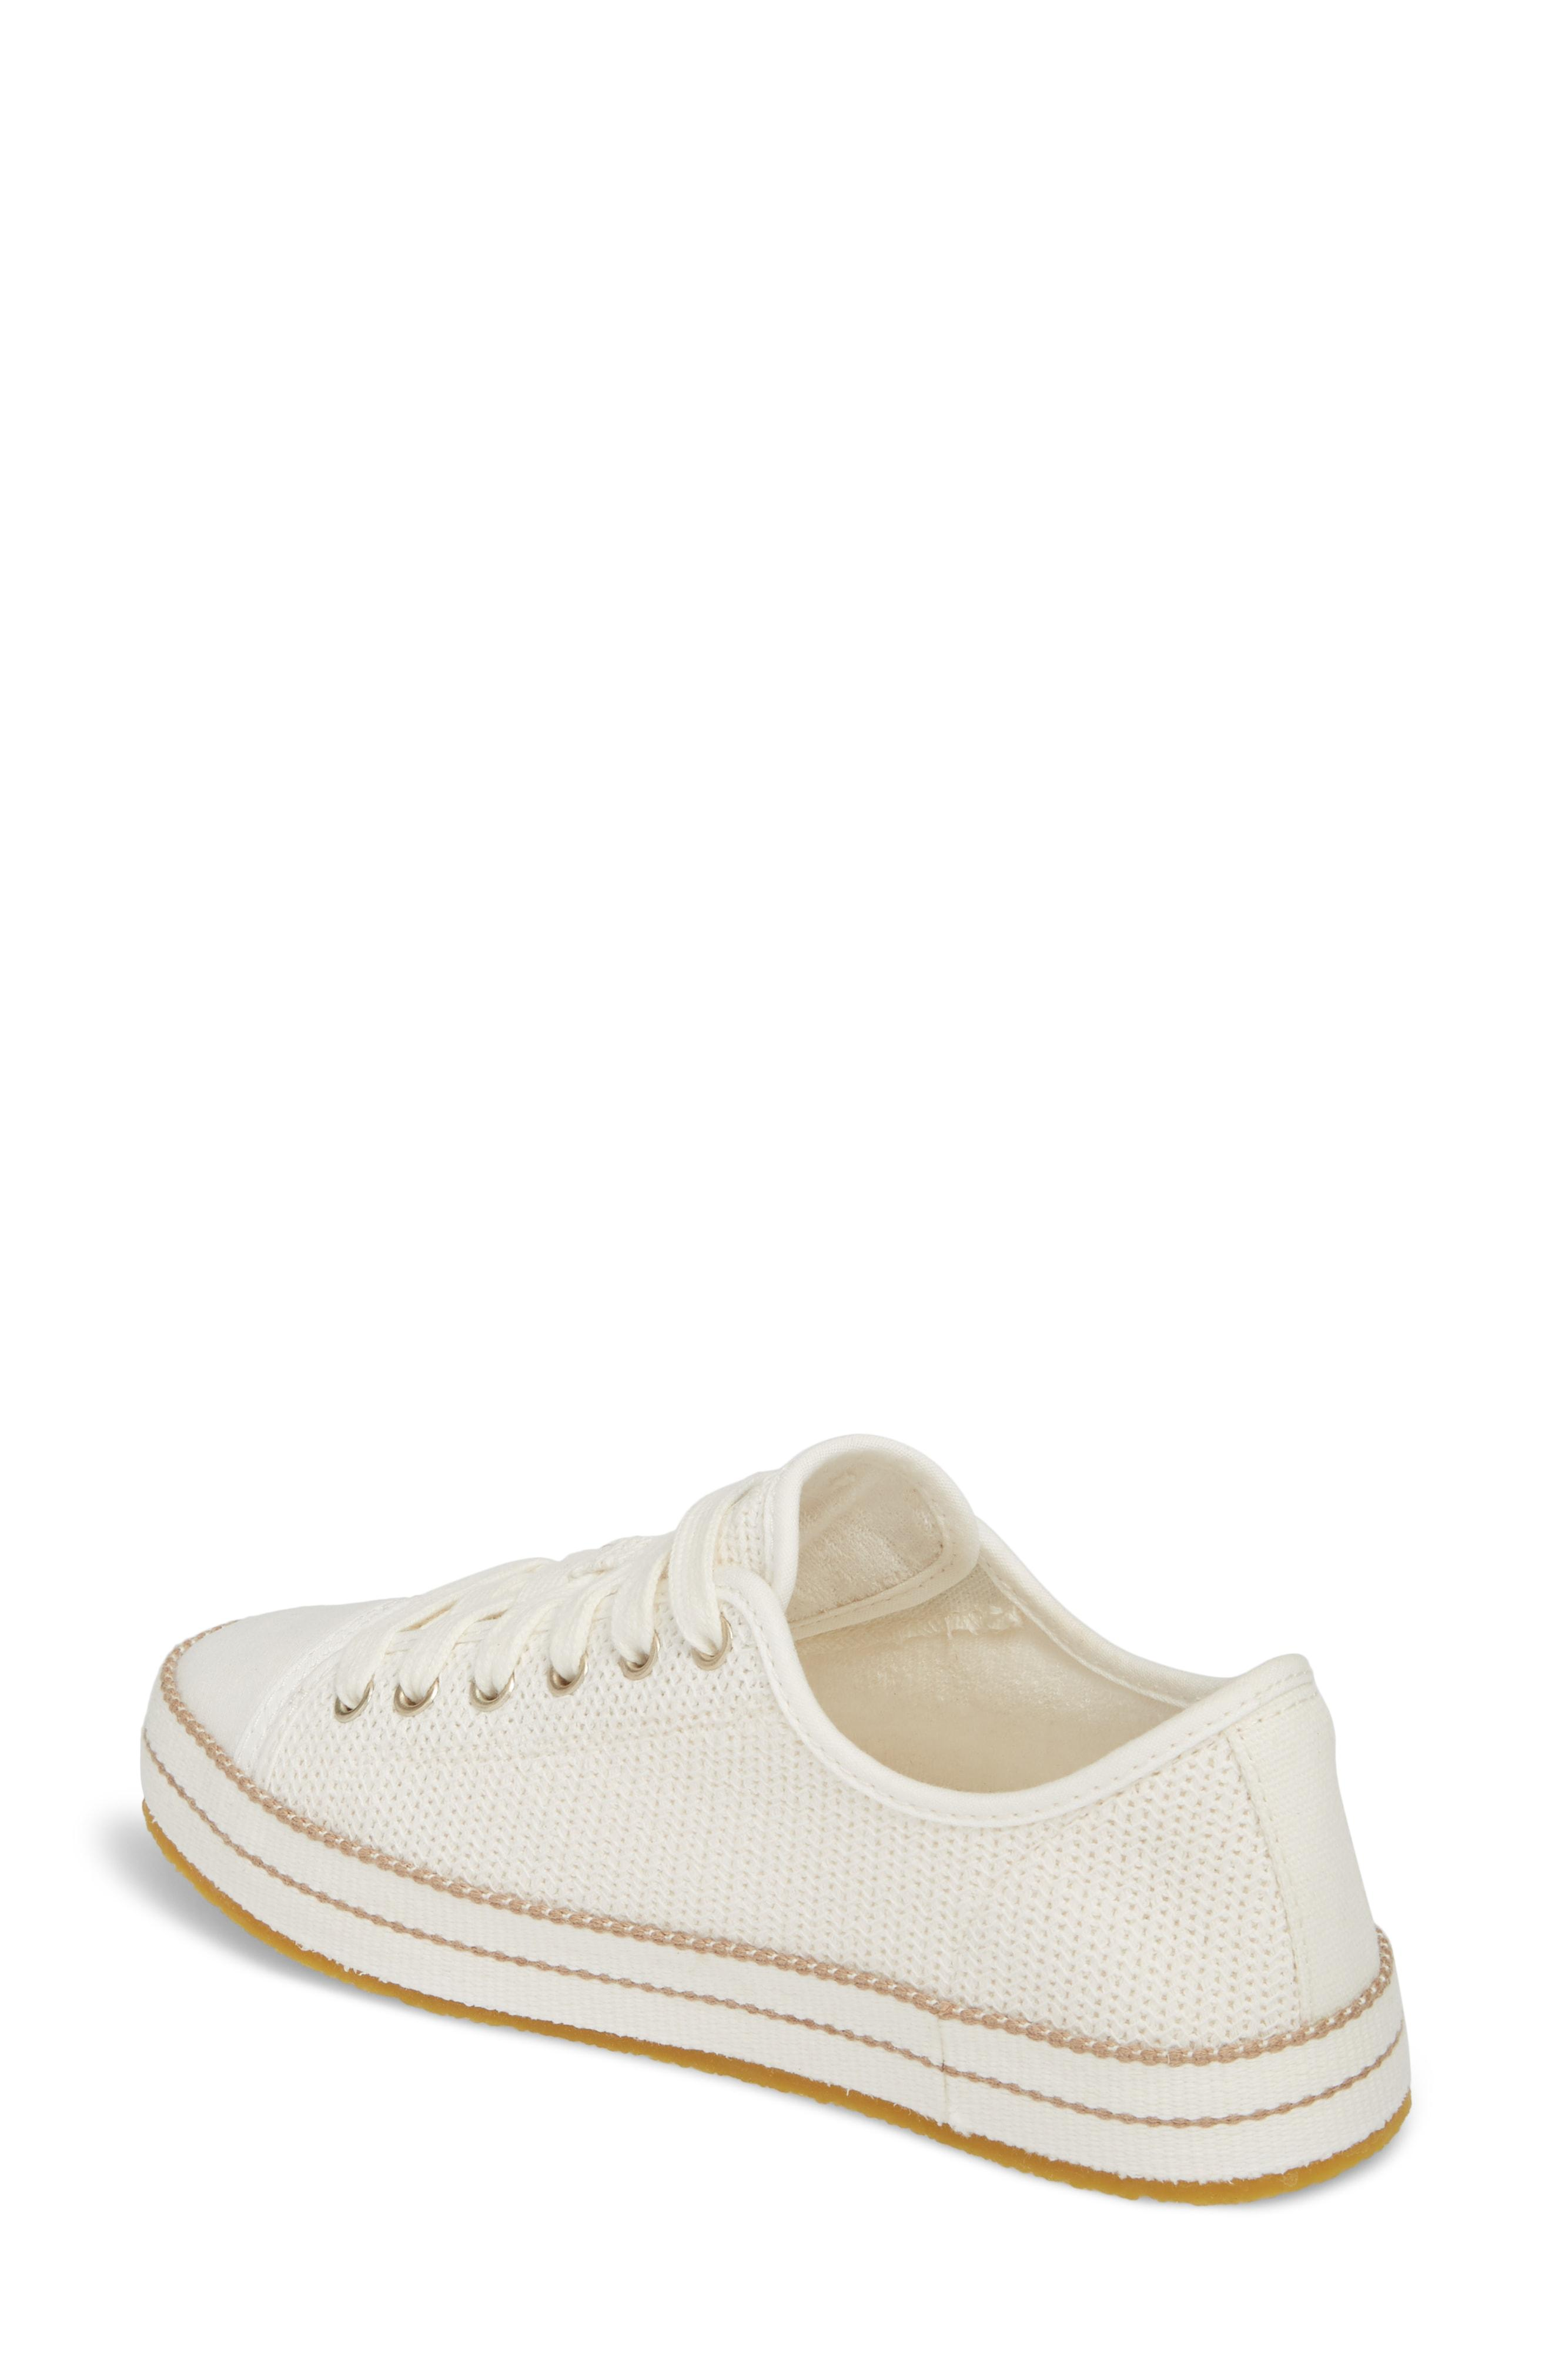 44c8bfddb42 Claudi Knit Lace-Up Sneakers in Natural